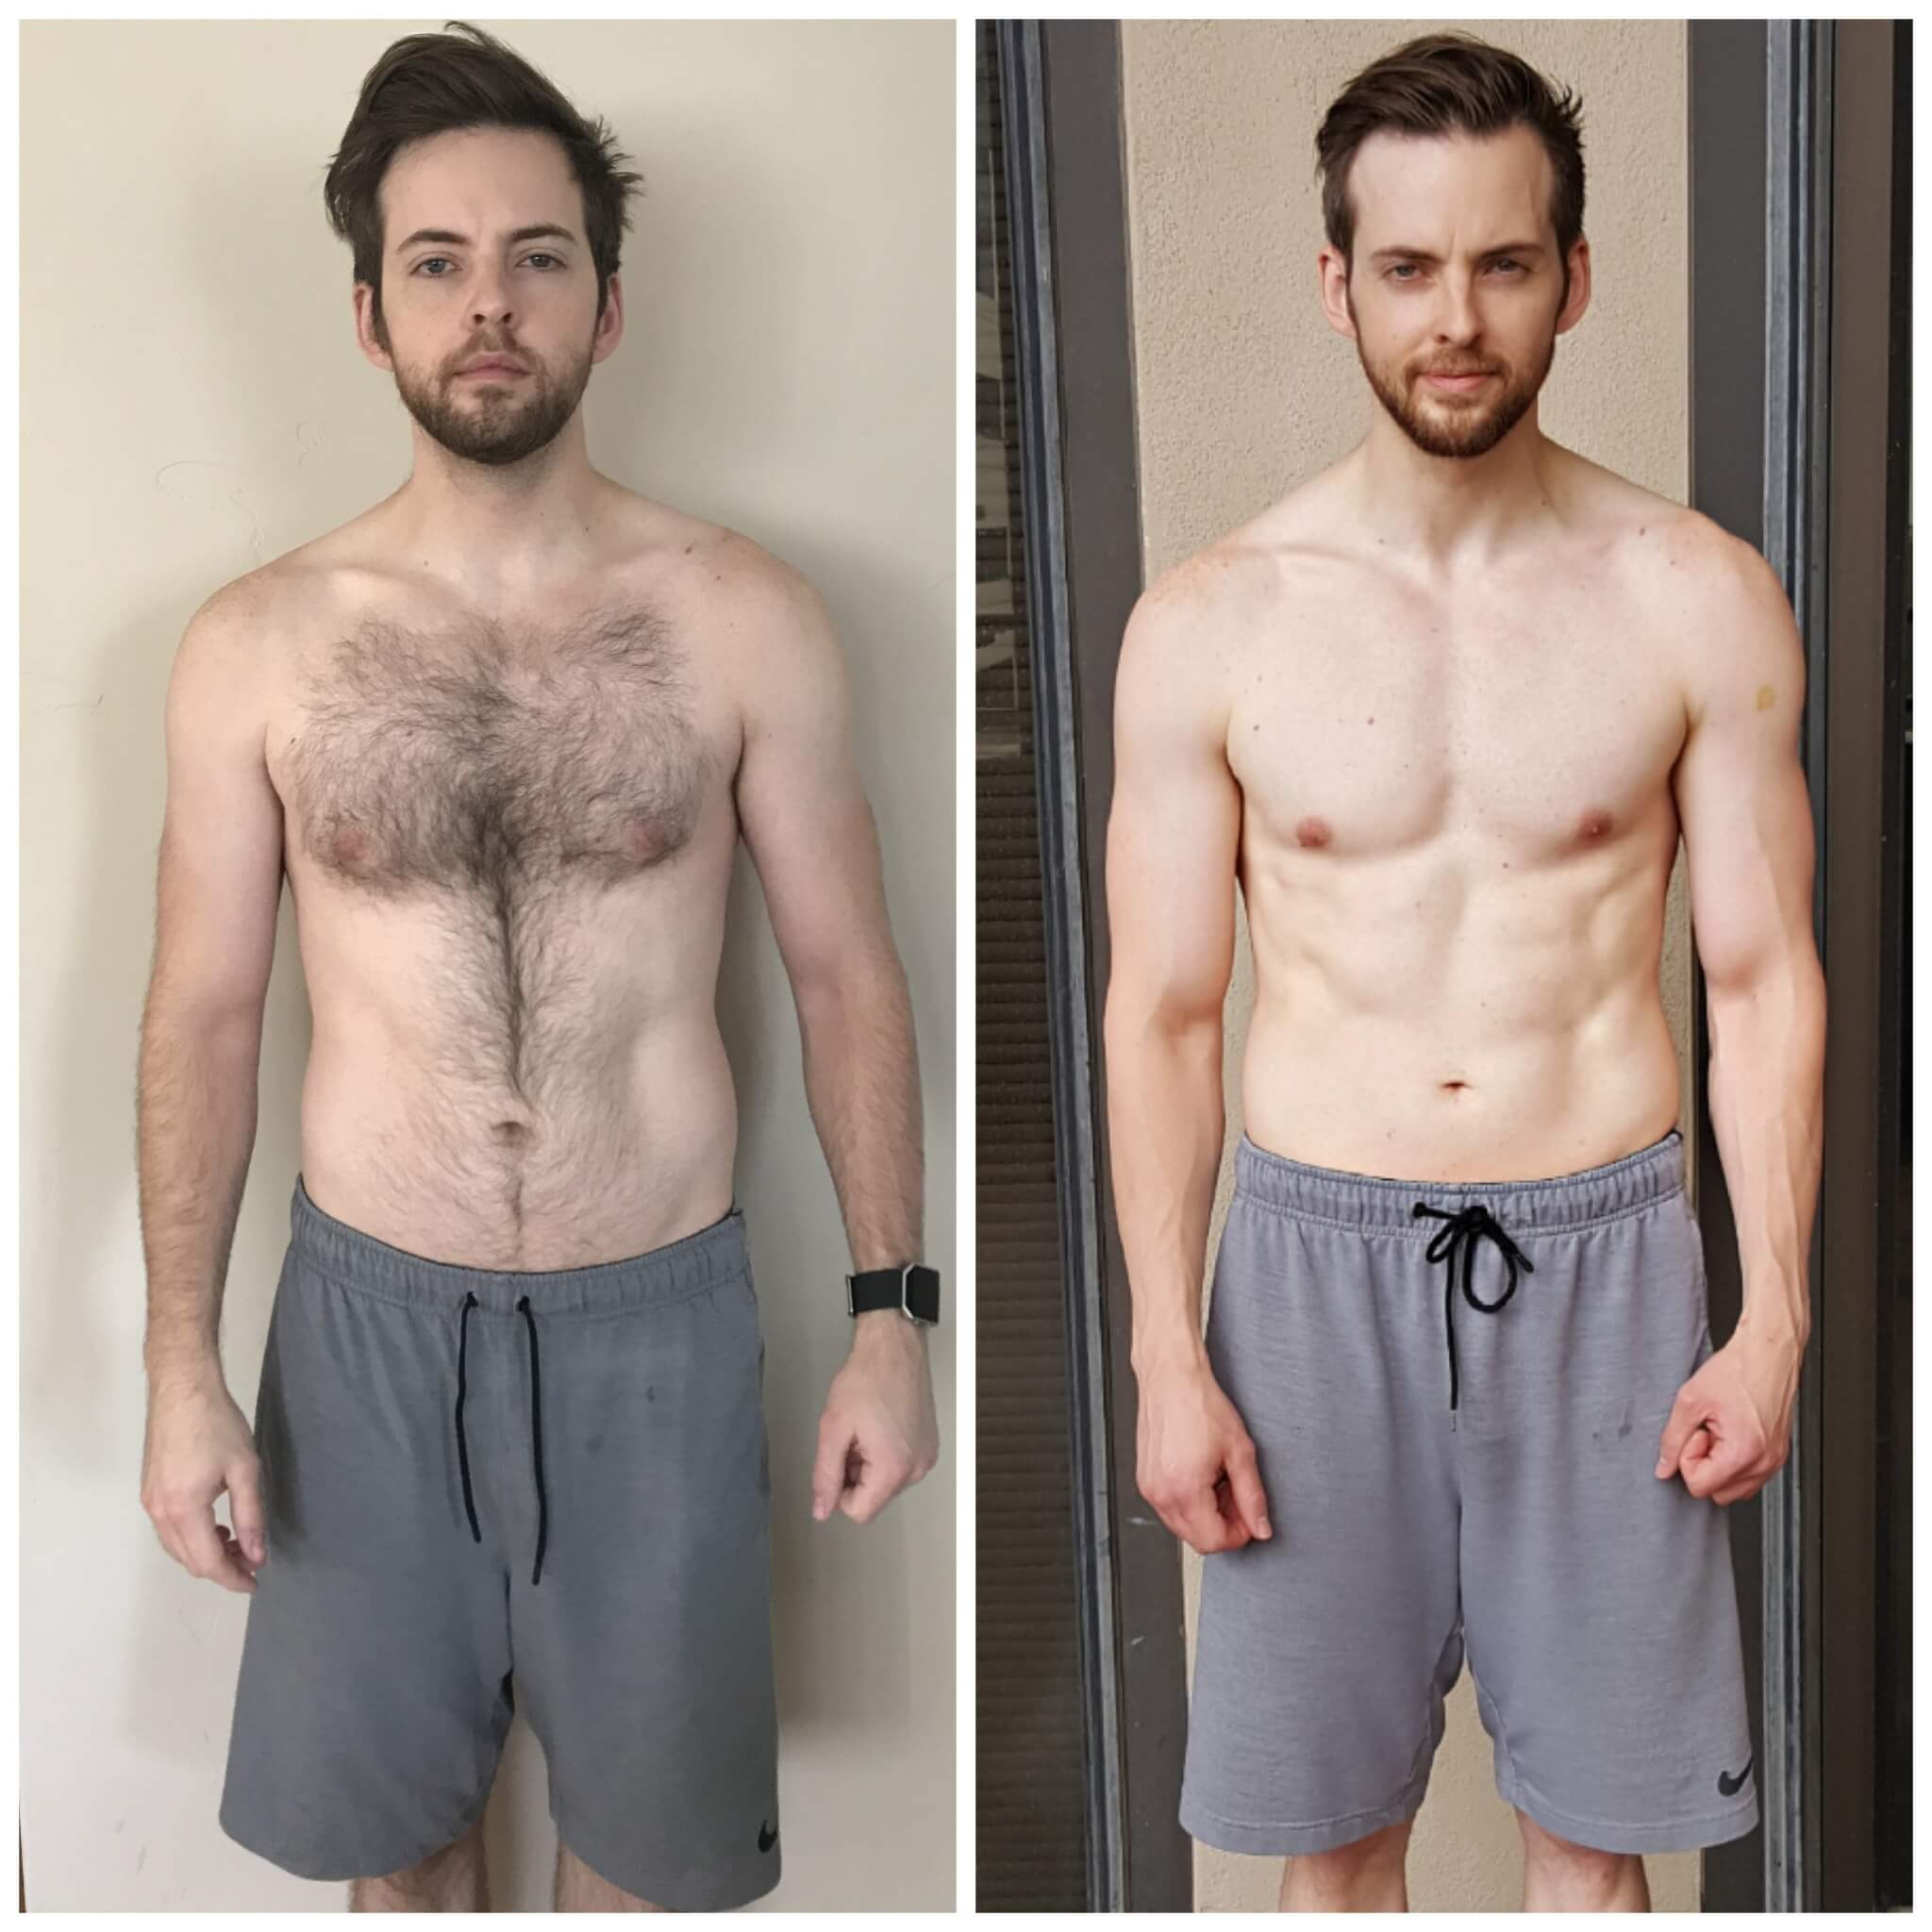 David Fitness Transformation personal training Dallas